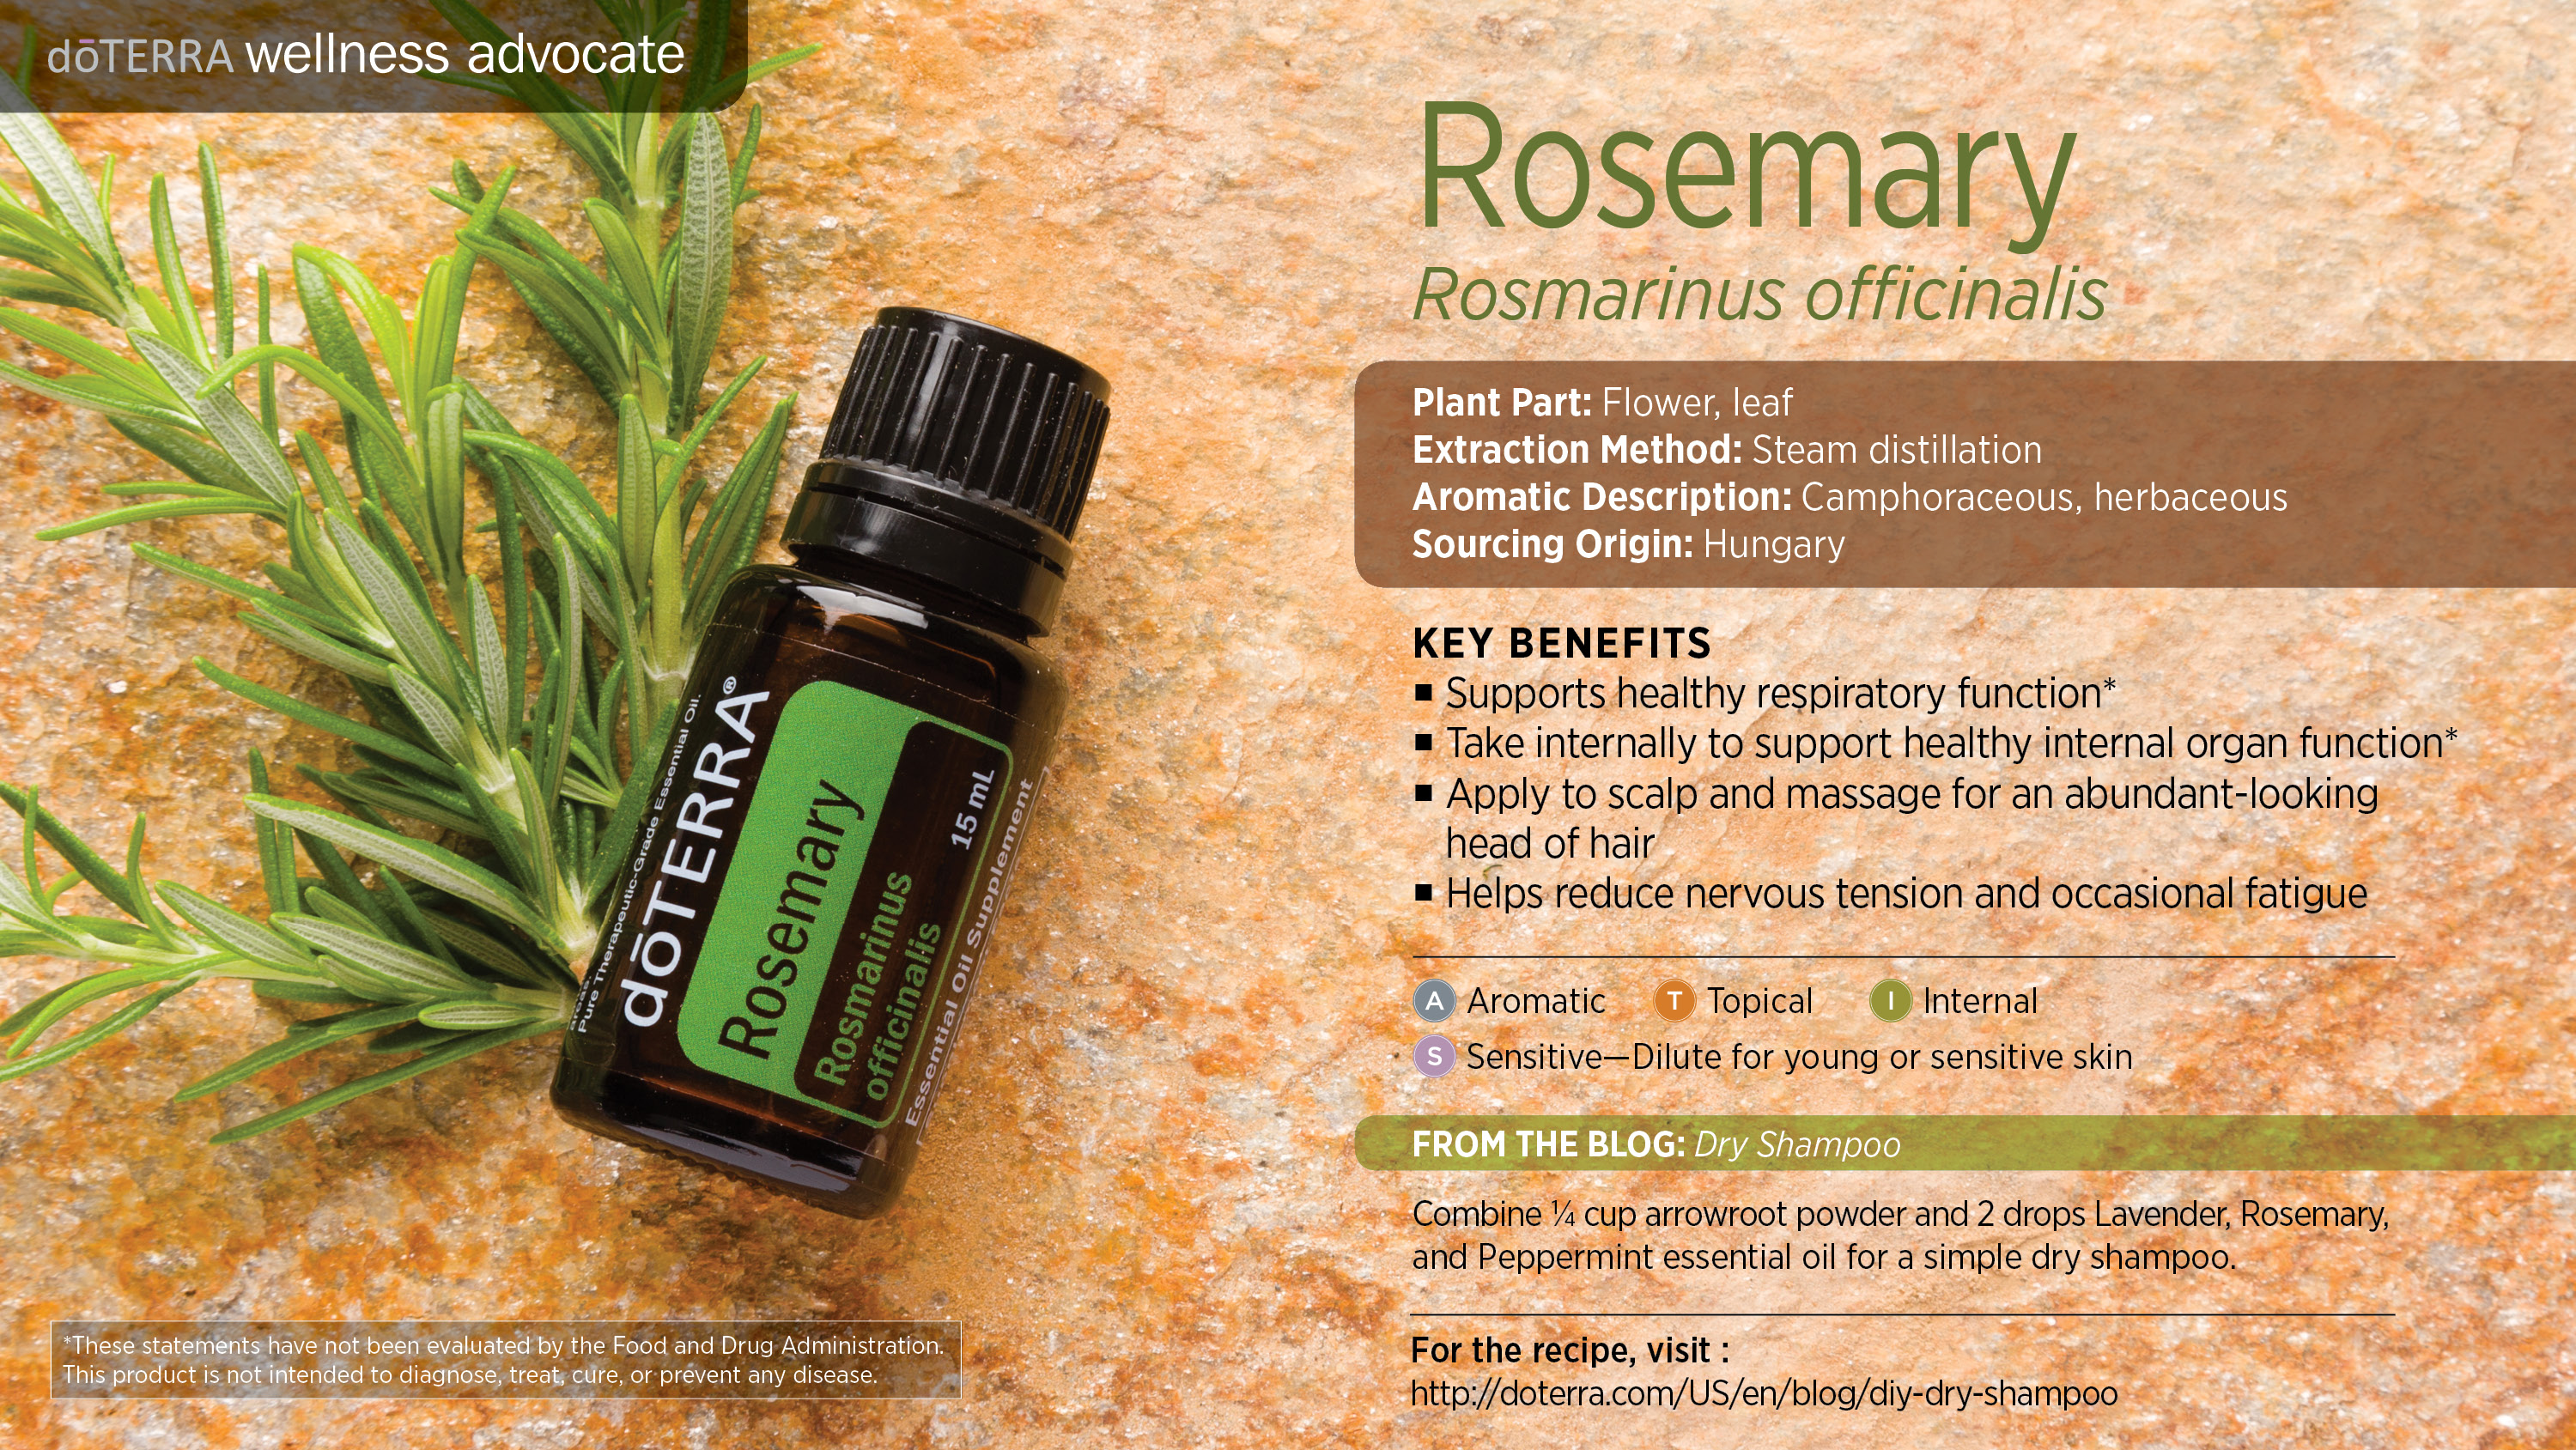 doTERRA Rosemary Essential Oil Uses with DIY and Food Recipes -